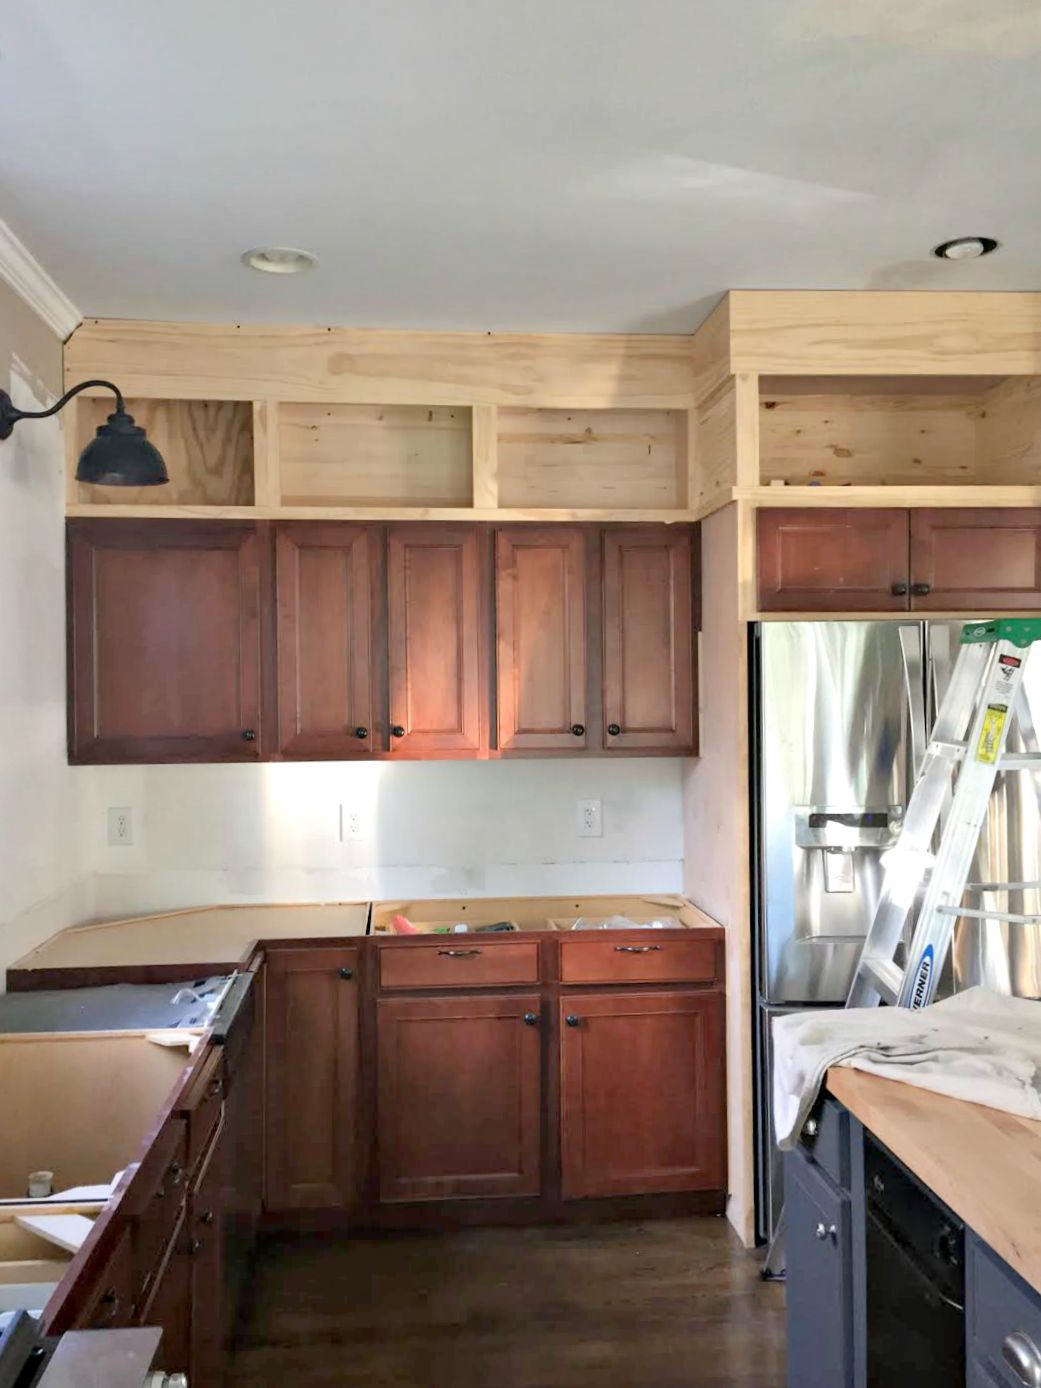 Building cabinets up to the ceiling from thrifty decor chick for Building kitchen cabinets